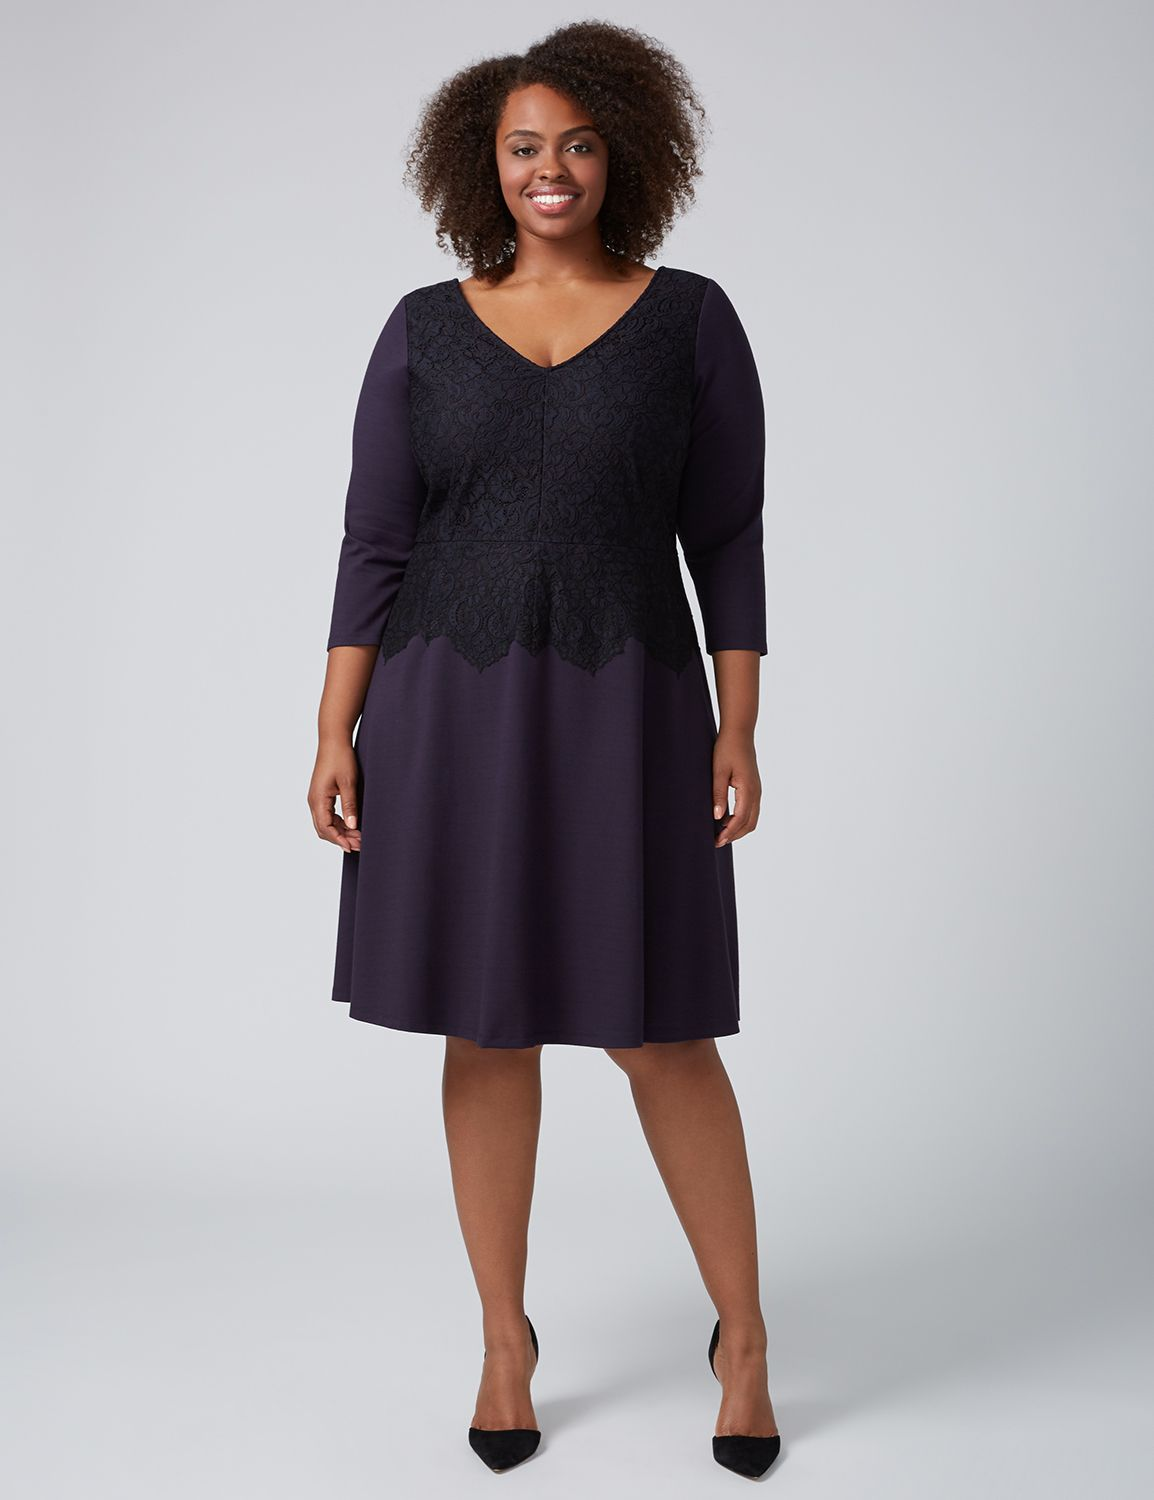 Lane Bryant Womens 3/4 Sleeve Fit & Flare Dress With Lace 12 Night Sky